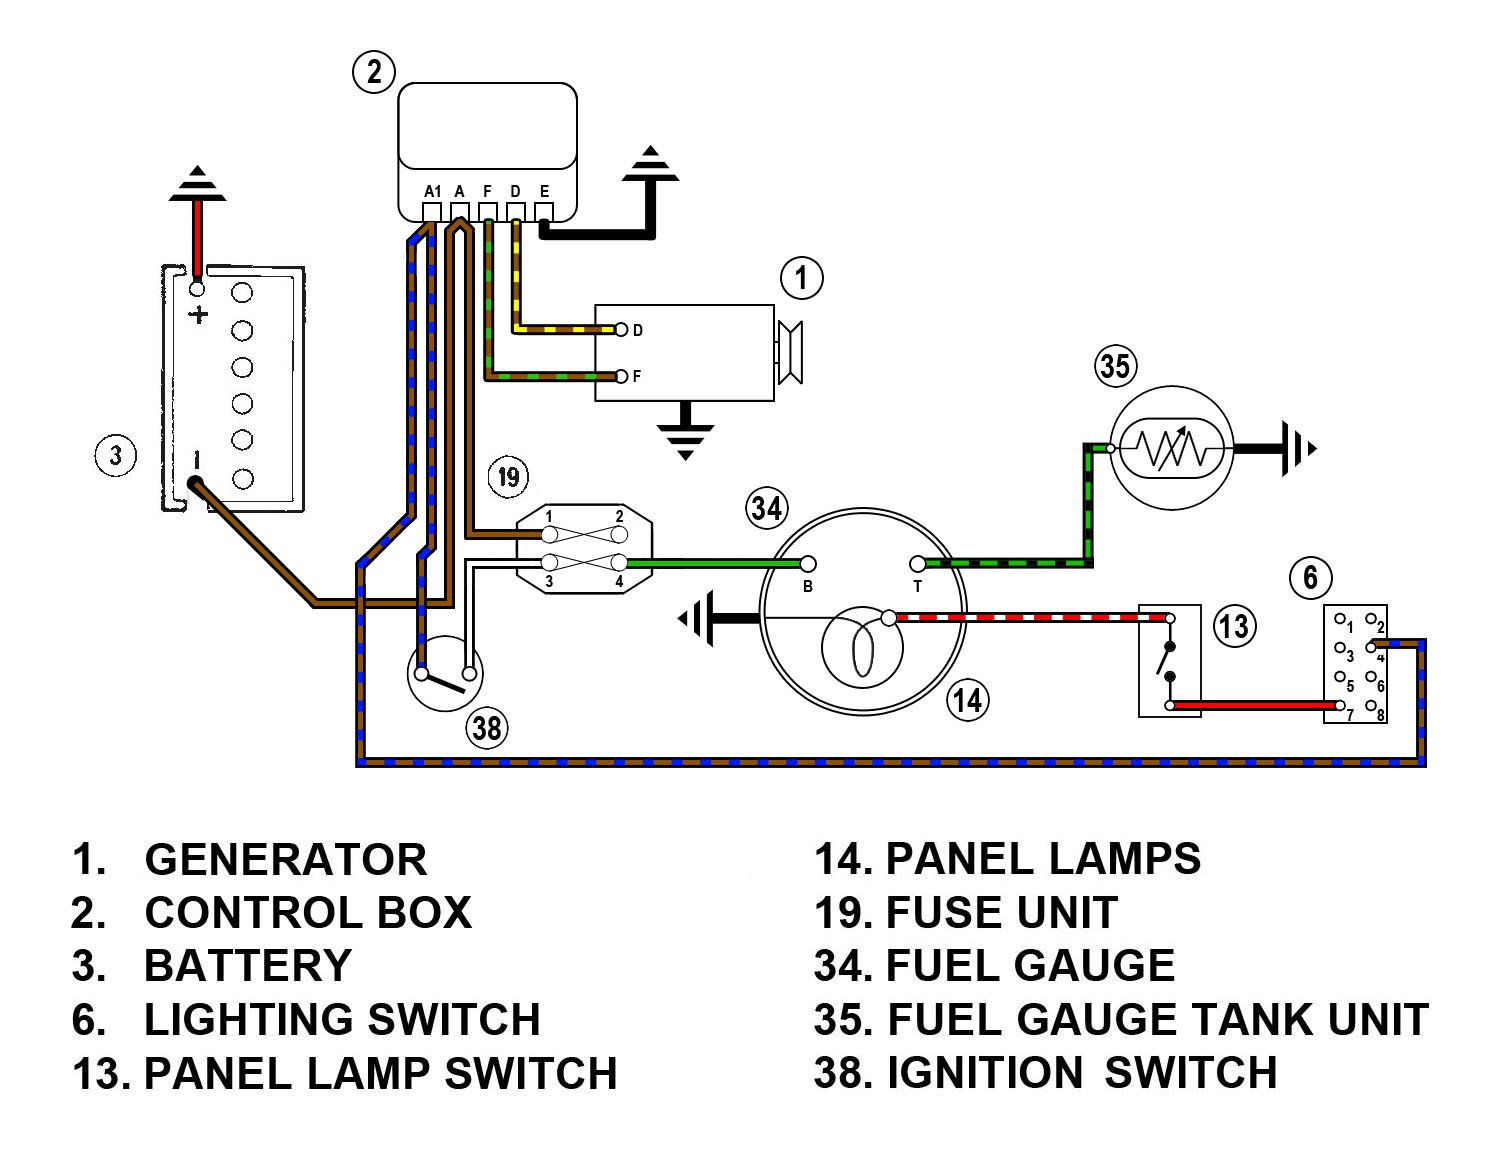 auto meter wiring diagram Collection-10 Auto Meter Wiring Diagram 5-i